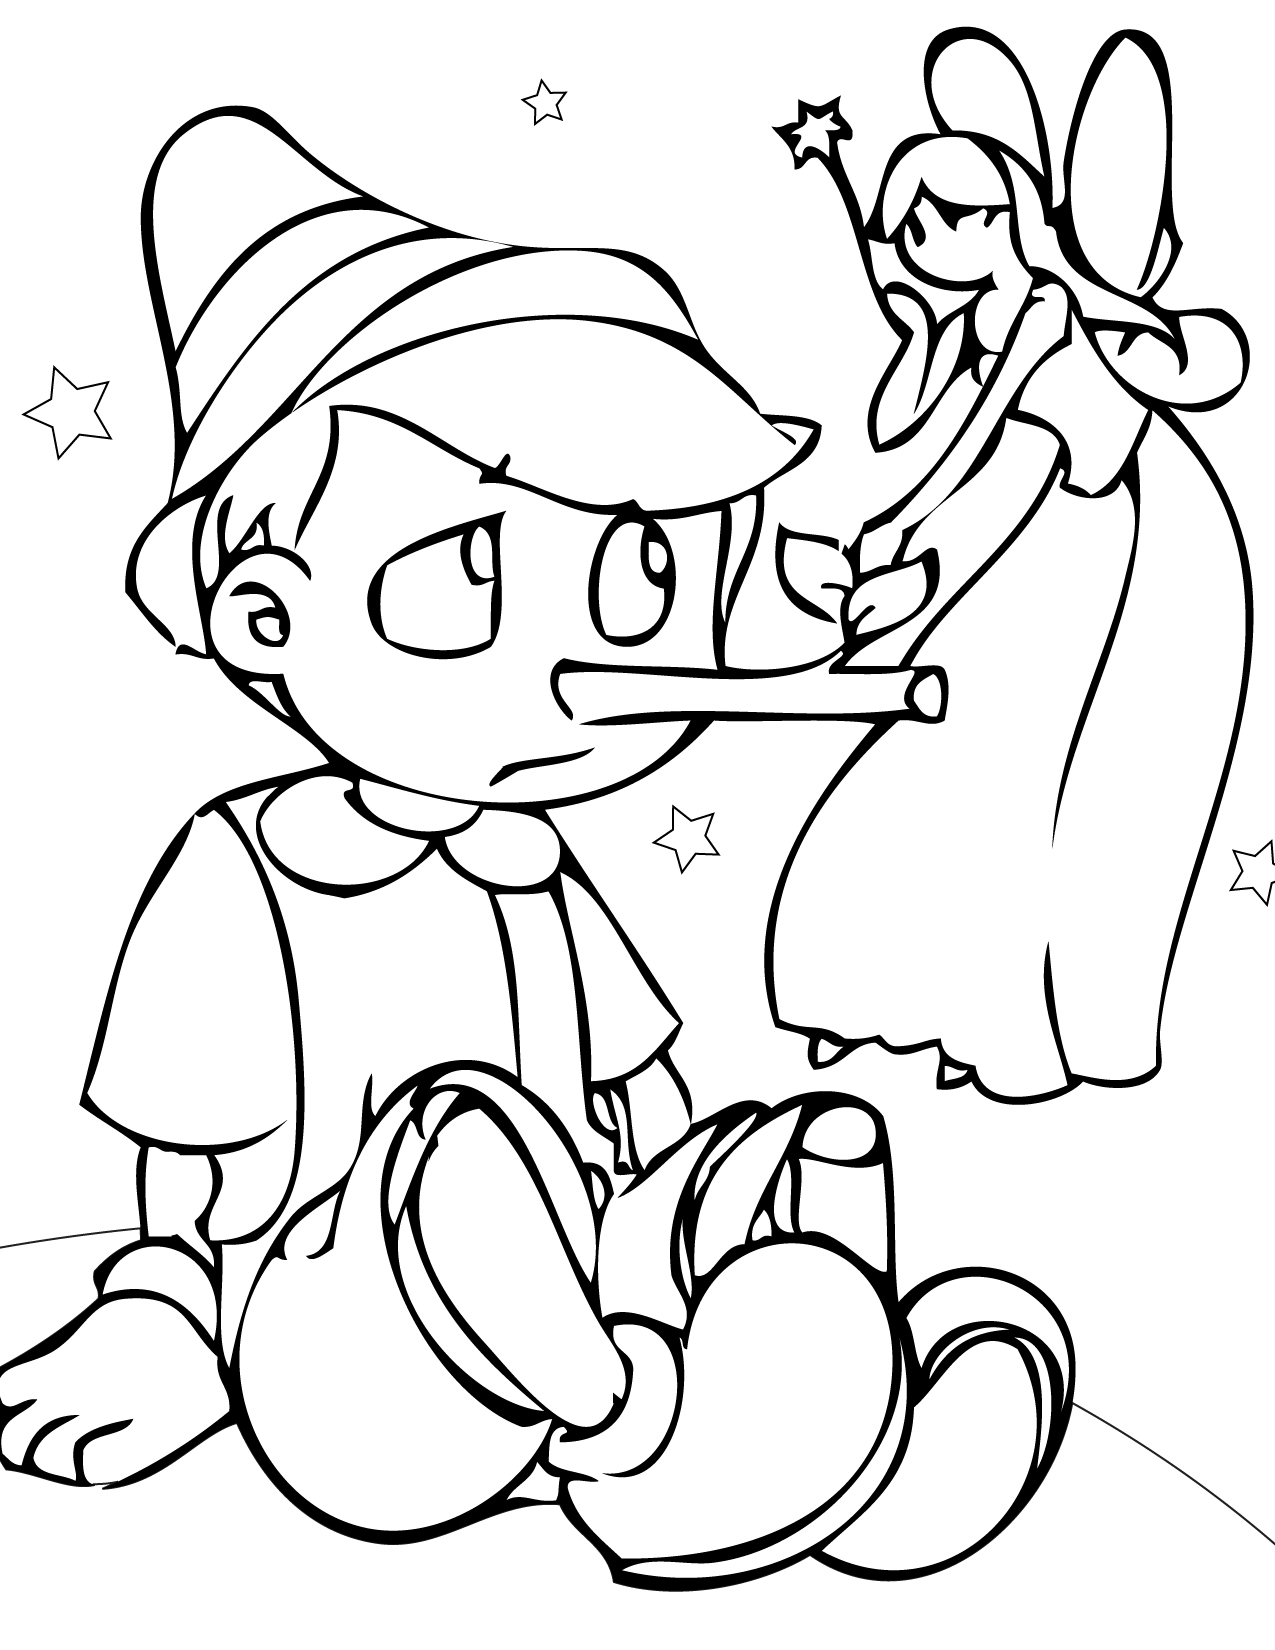 pinocchio coloring sheet pinocchio coloring pages to download and print for free sheet coloring pinocchio